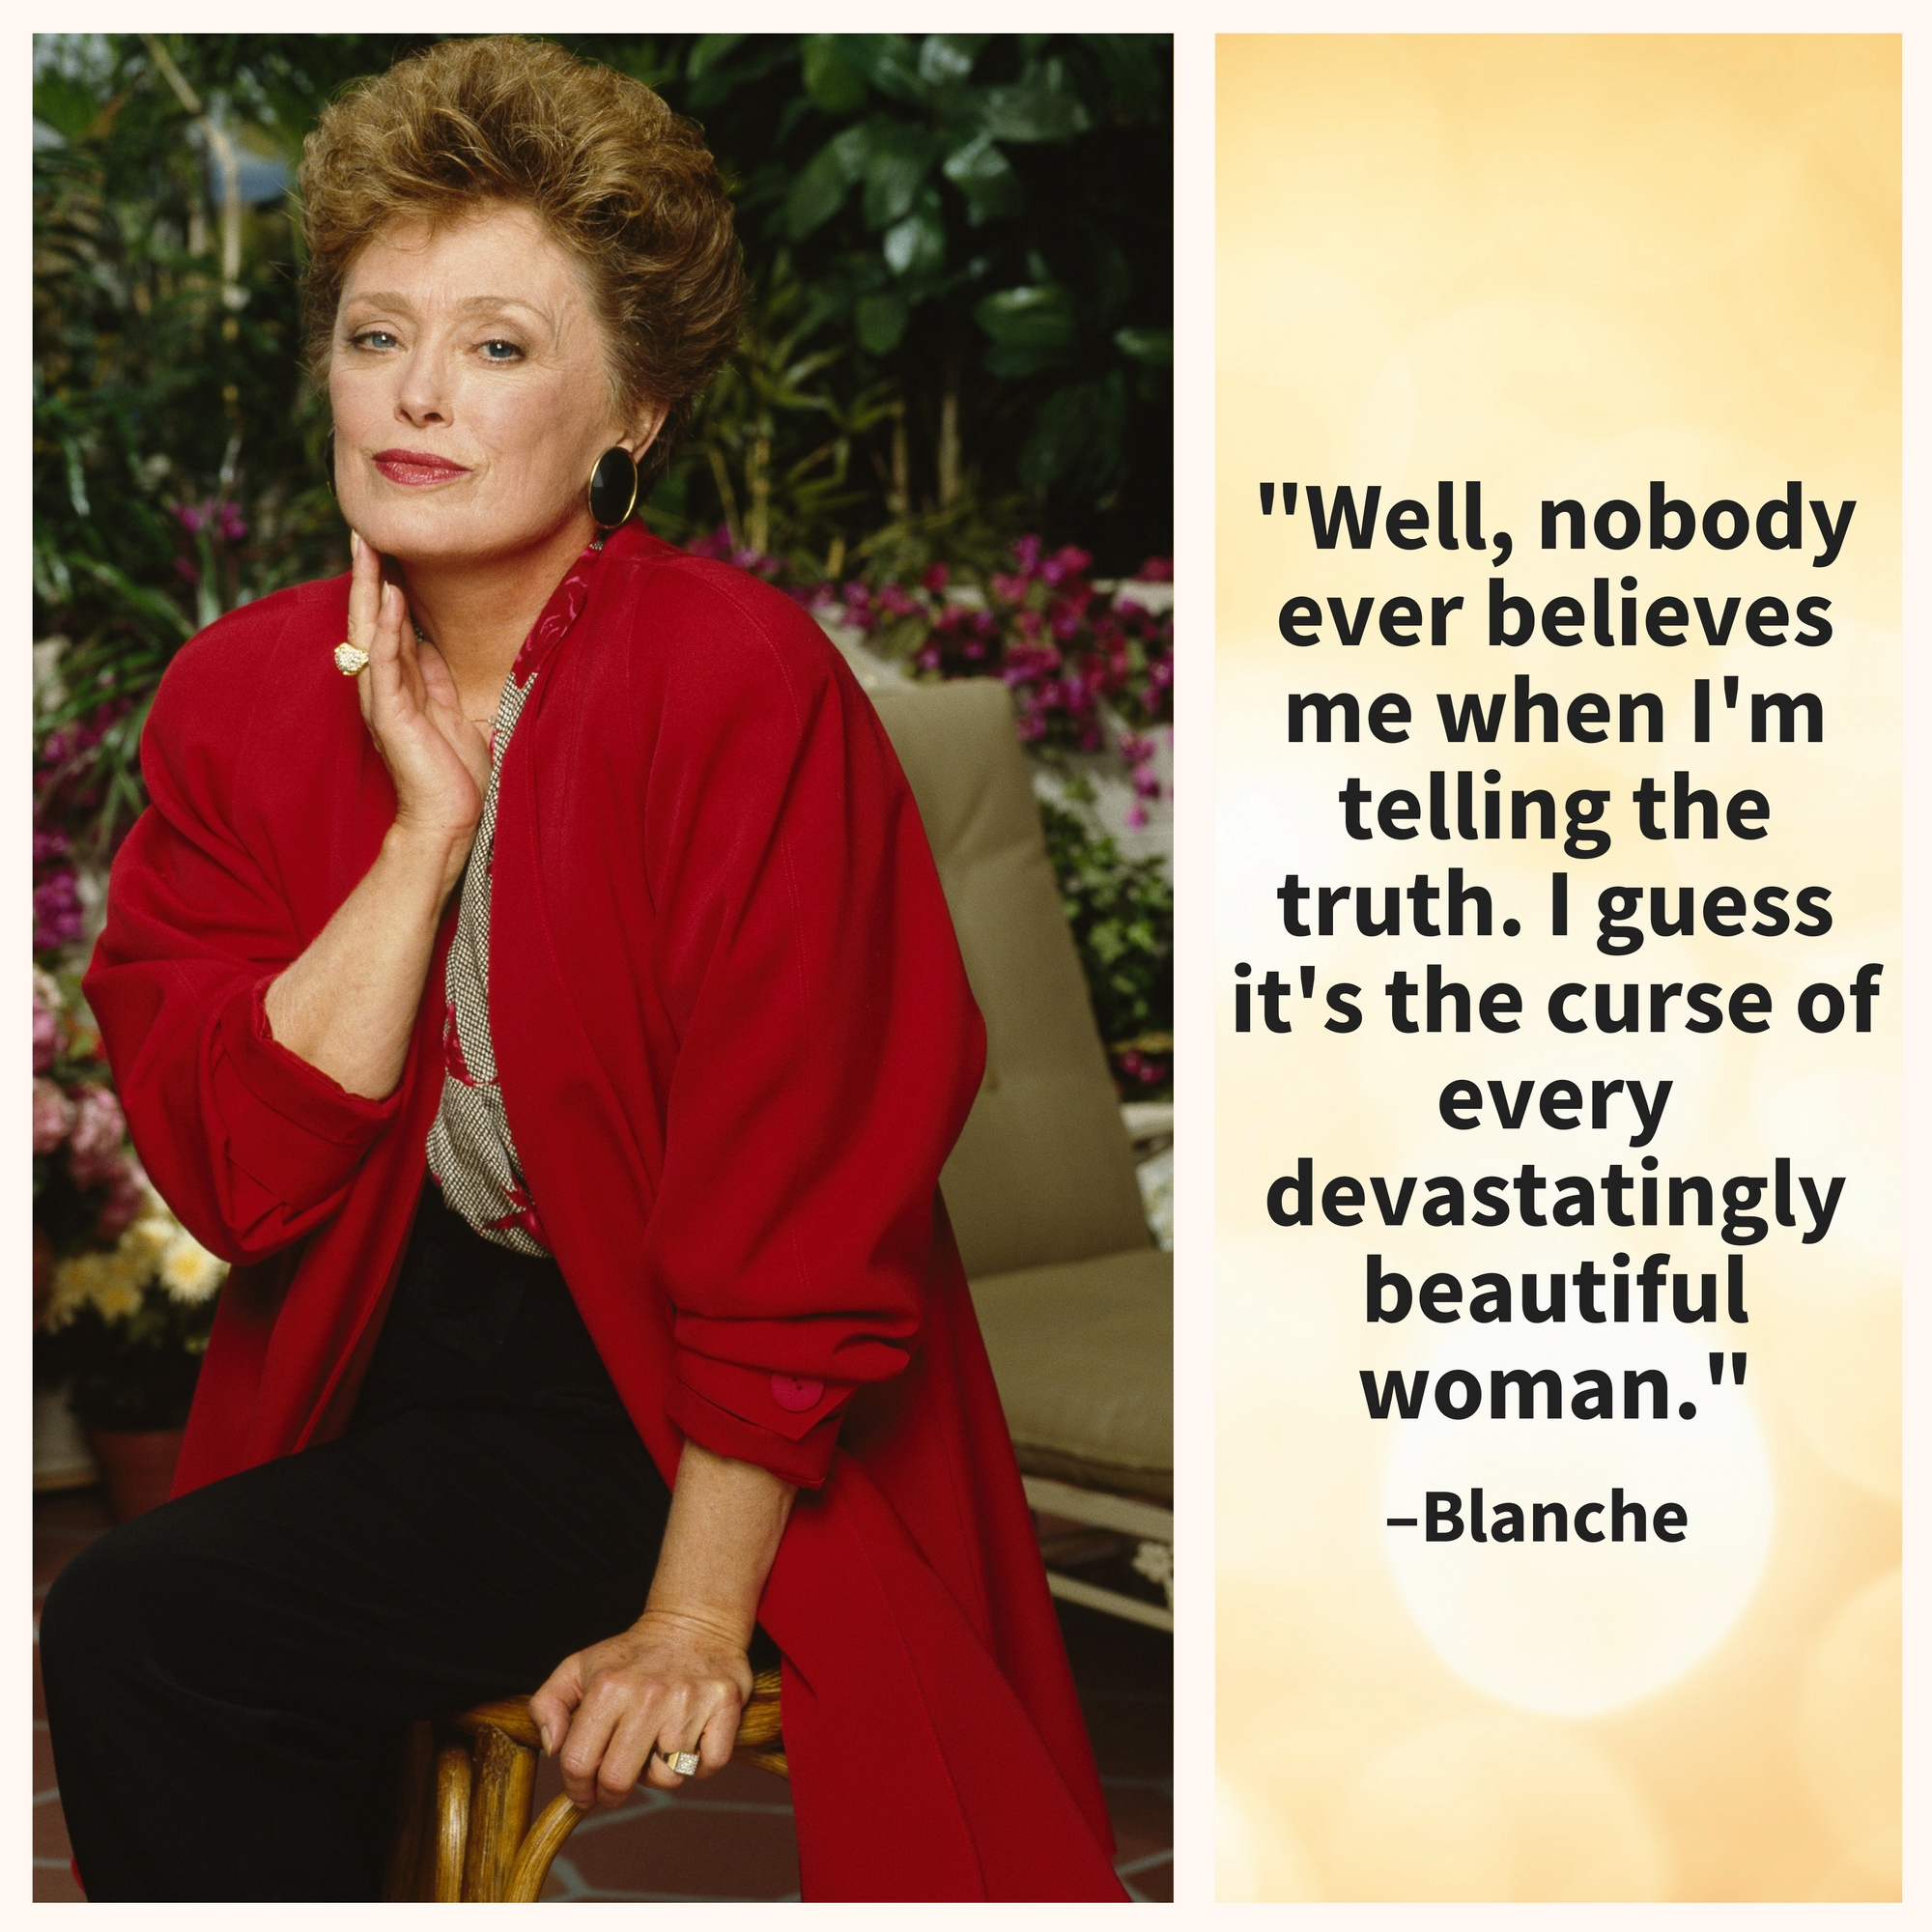 Blanche, showing her  humility.